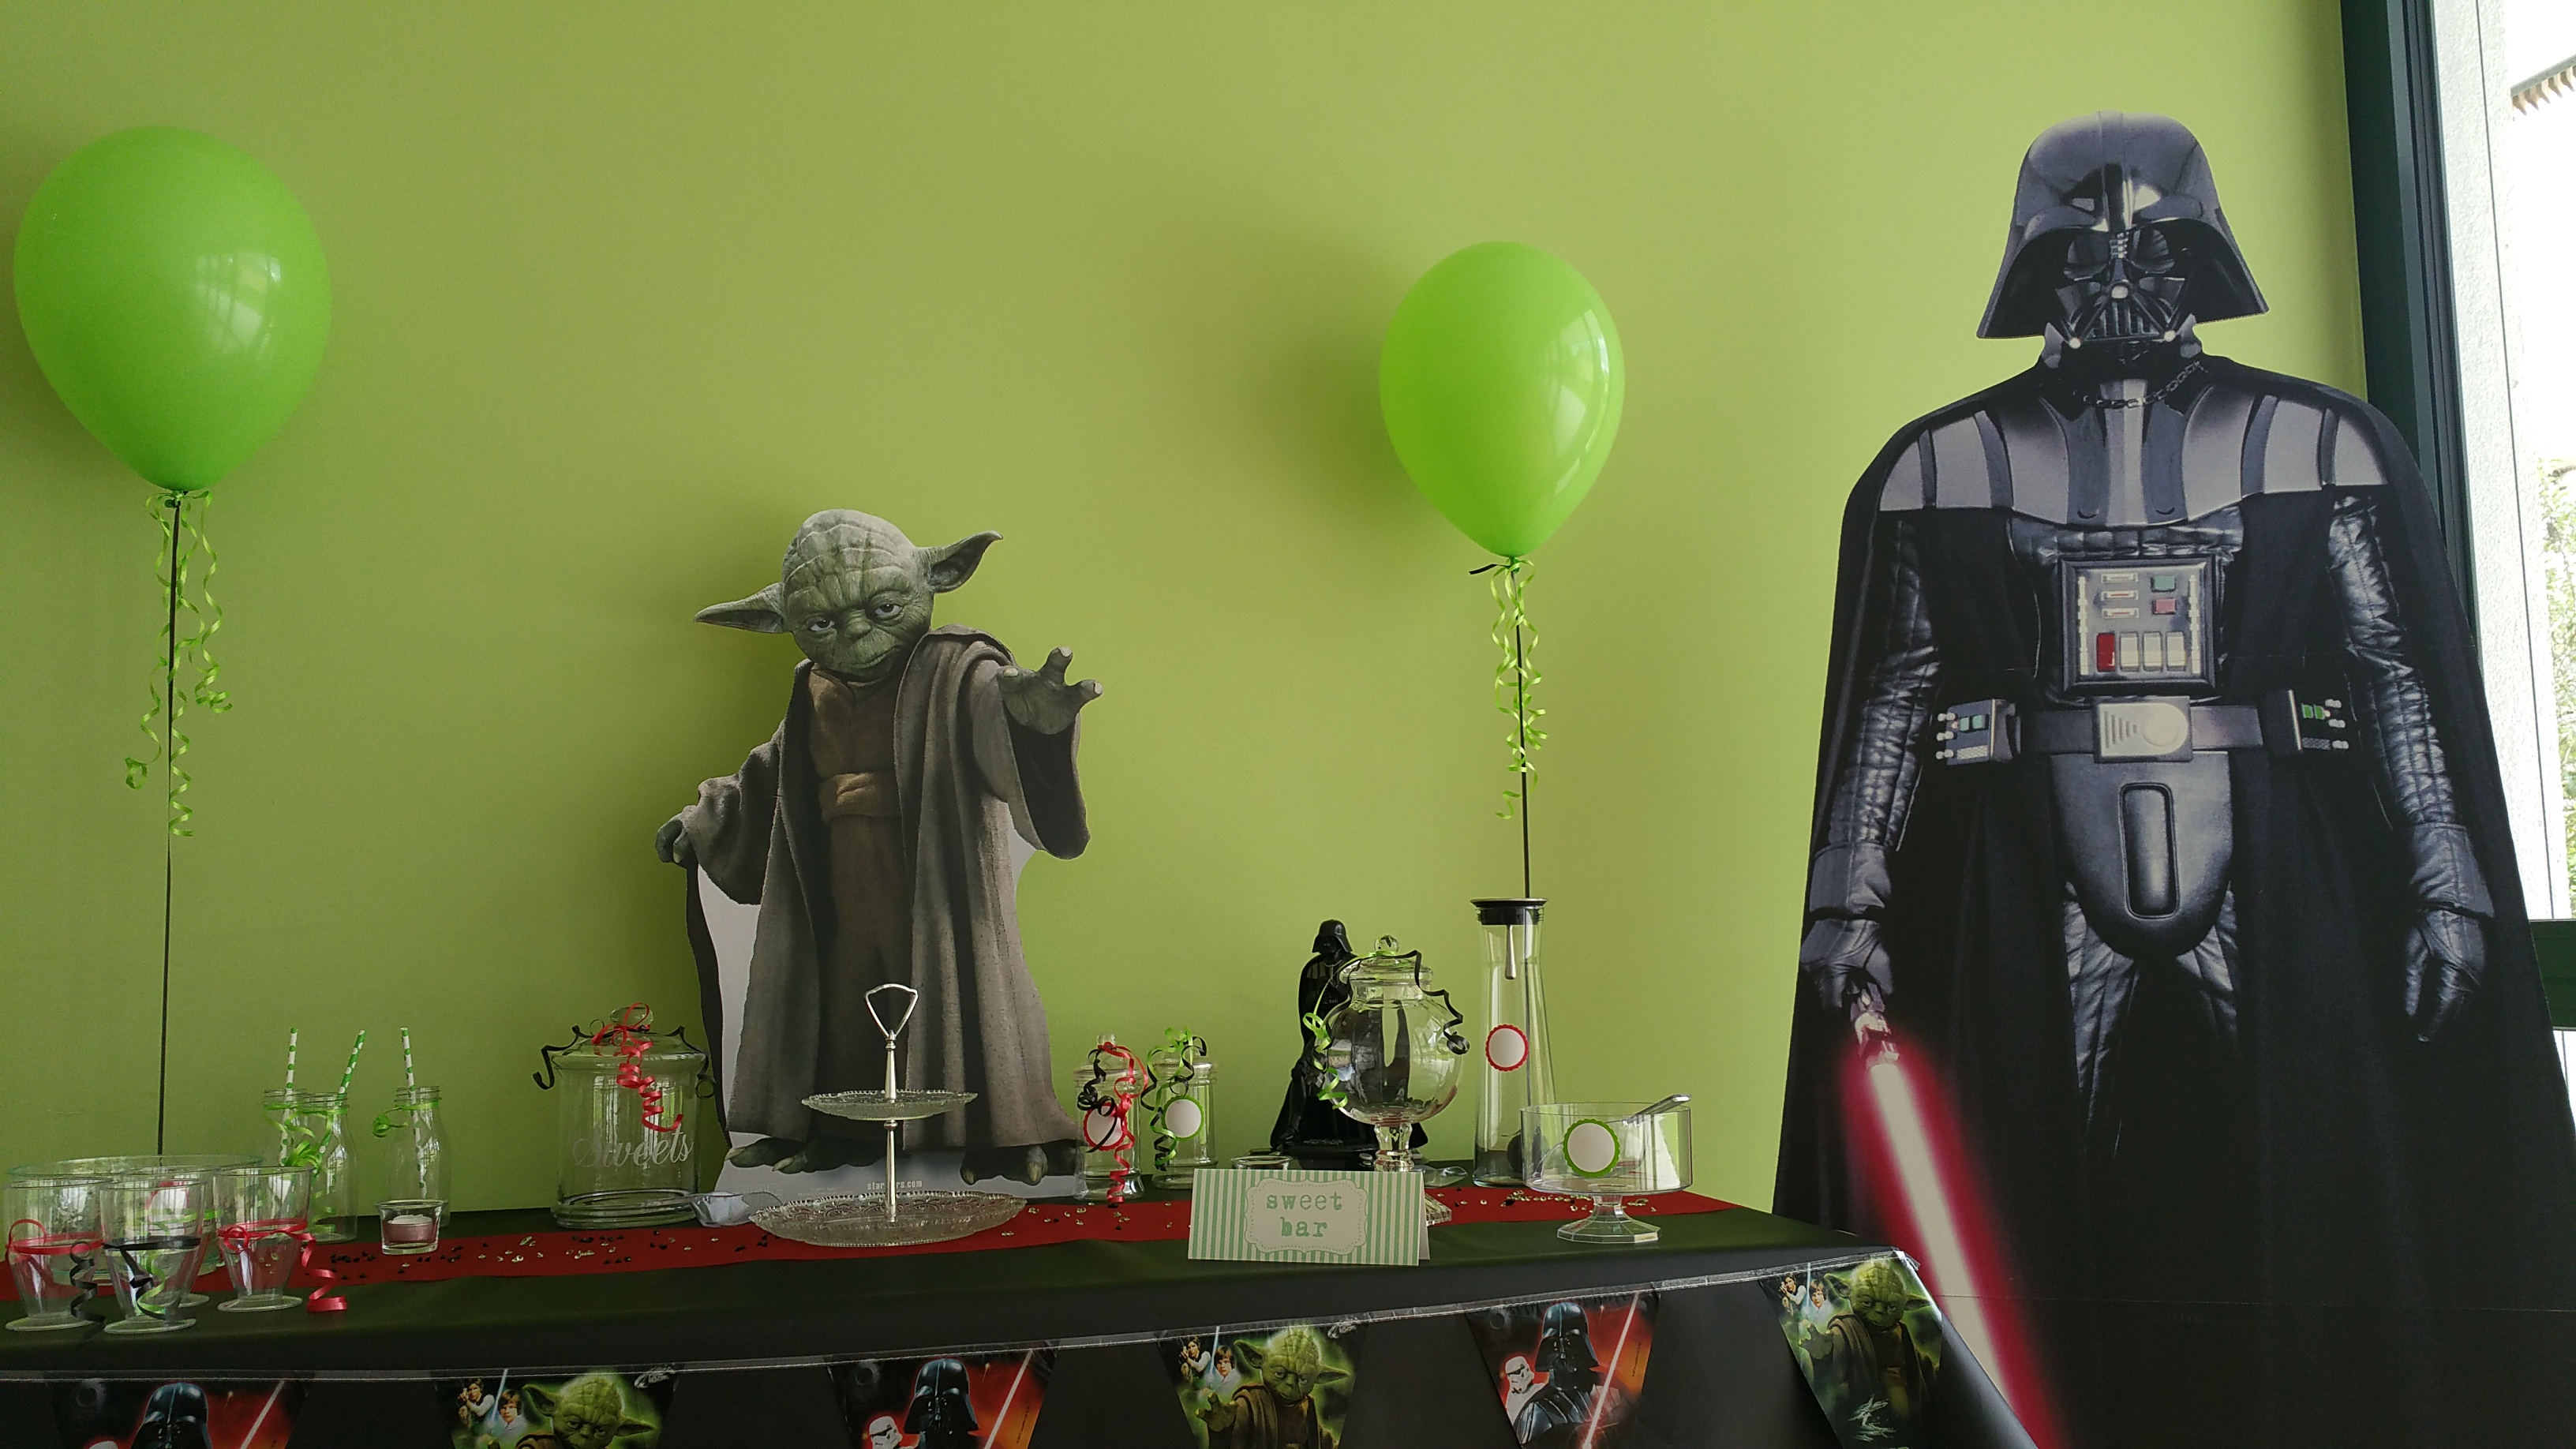 Candy Bar Gläser Star Wars Dekoration | Kindereventagentur Glueckskinder